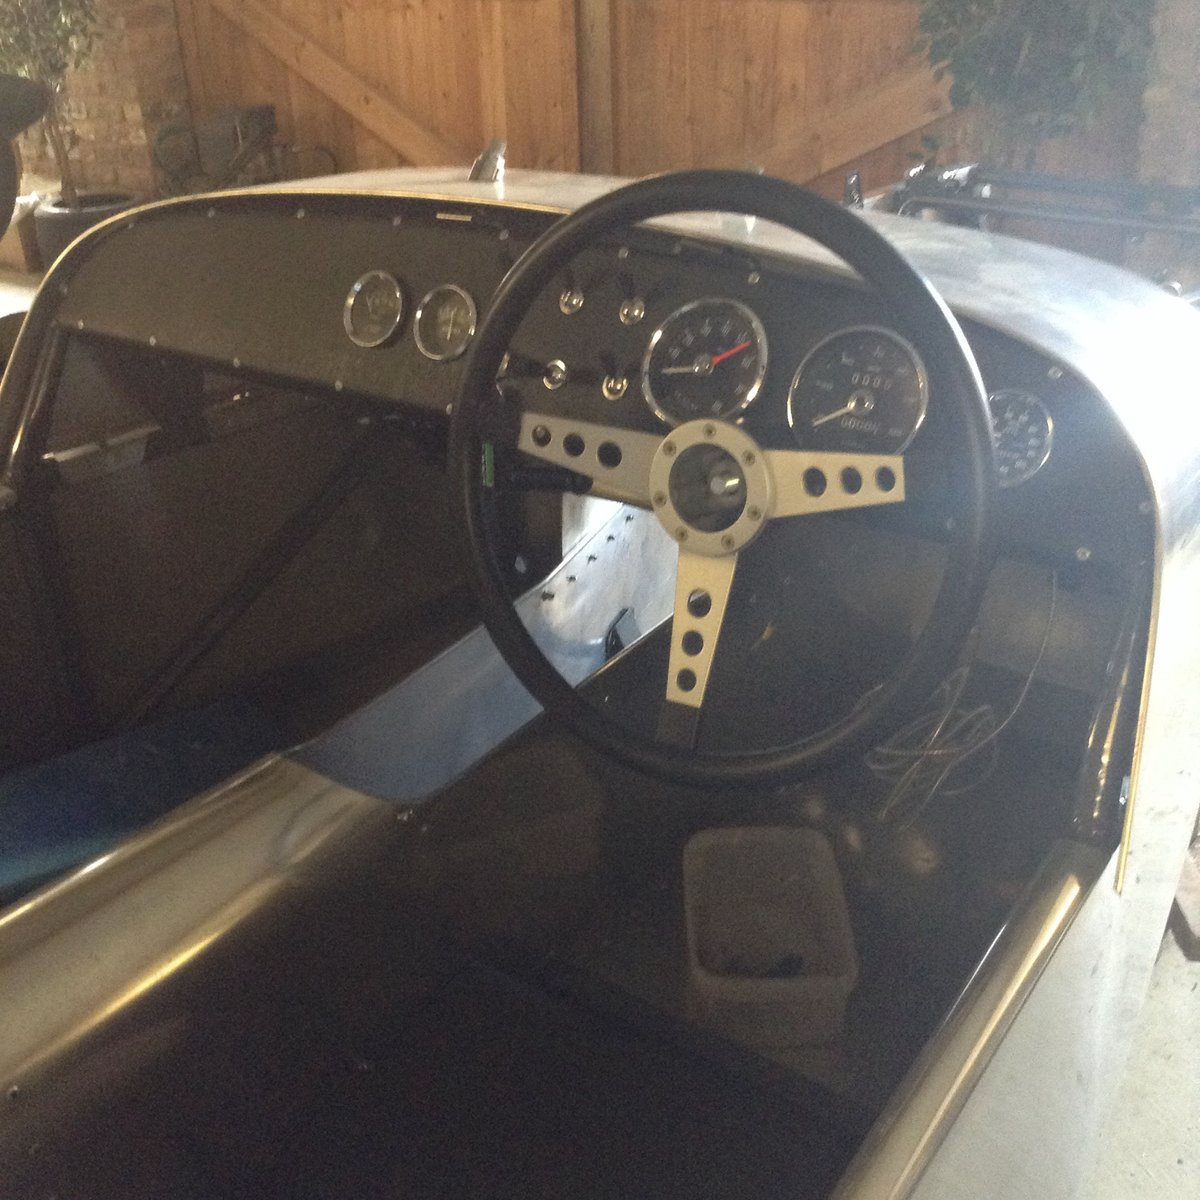 1969 Lotus  Seven S3  (Holbay Spec.) For Sale (picture 2 of 6)